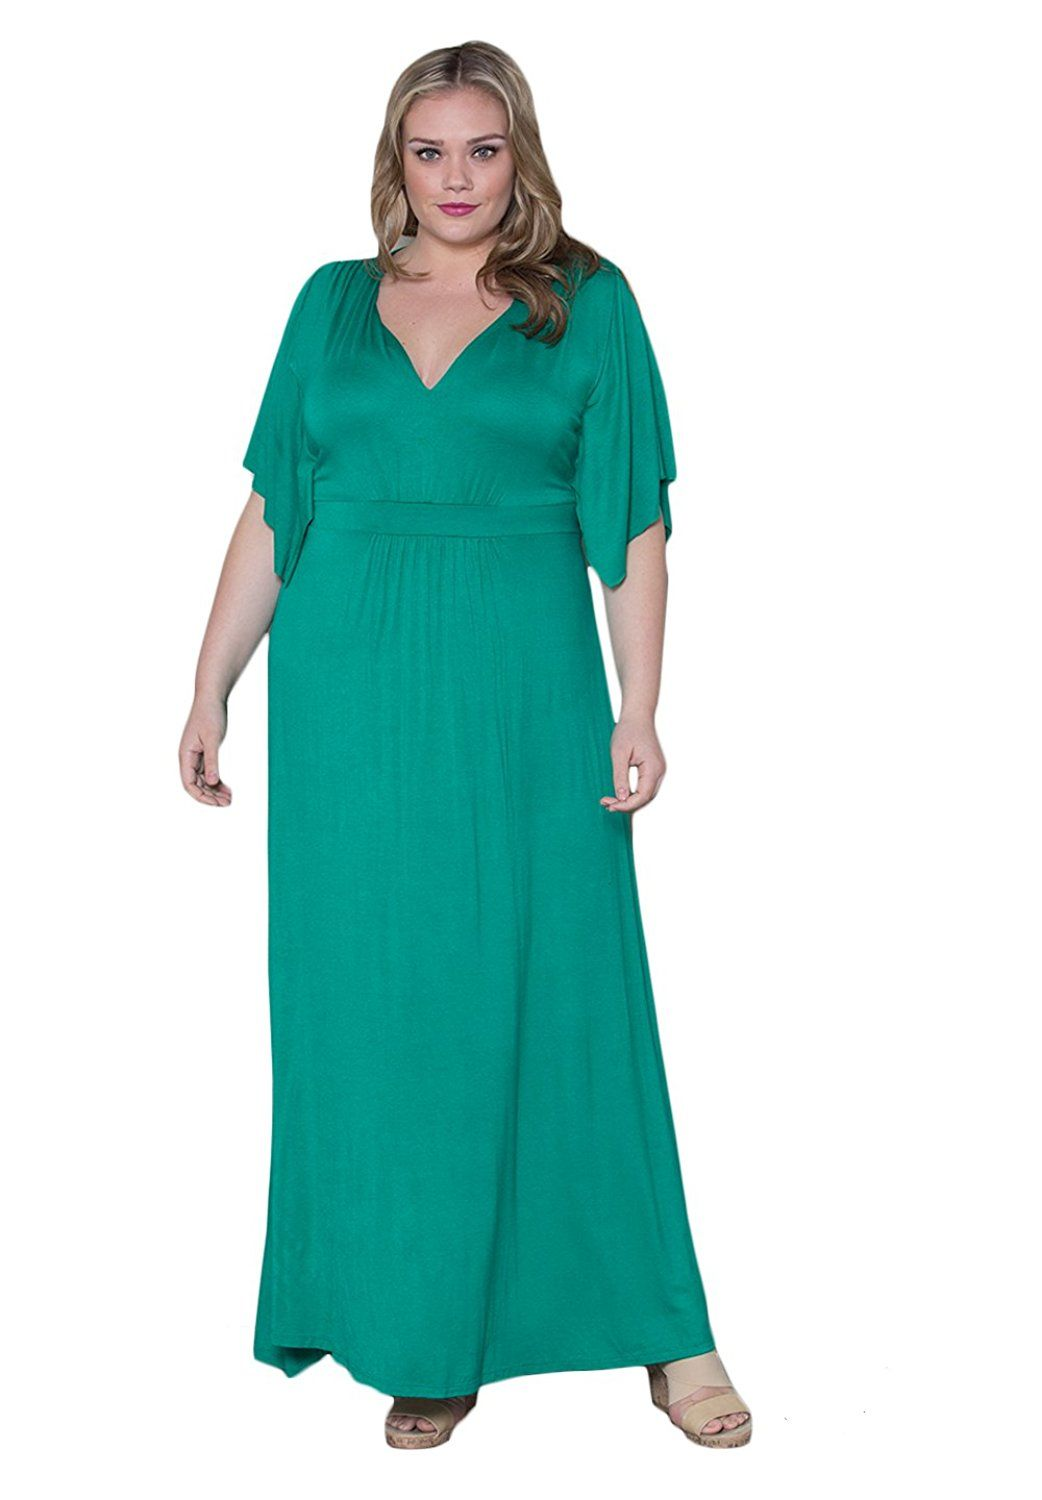 SWAK Womens Plus Size Joan Maxi Dress >>> Hurry! Check out this ...